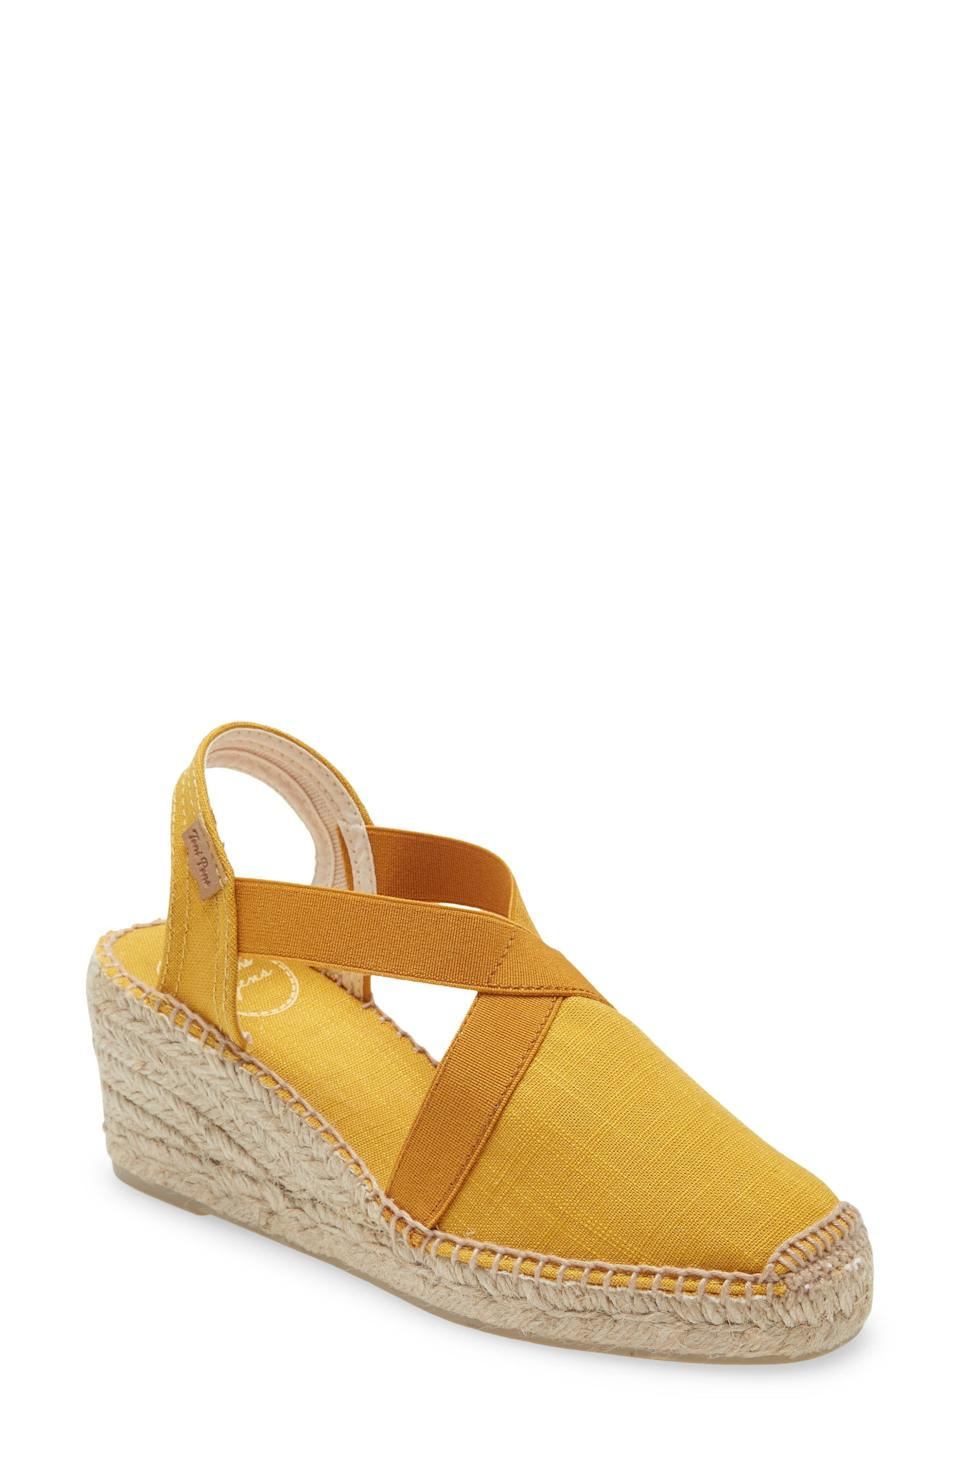 """<p><strong>Toni Pons</strong></p><p>nordstrom.com</p><p><strong>$109.95</strong></p><p><a href=""""https://go.redirectingat.com?id=74968X1596630&url=https%3A%2F%2Fwww.nordstrom.com%2Fs%2Ftoni-pons-ter-slingback-espadrille-sandal-women%2F3970067&sref=https%3A%2F%2Fwww.prevention.com%2Fbeauty%2Fstyle%2Fg36040203%2Fcomfortable-wedge-sandals%2F"""" rel=""""nofollow noopener"""" target=""""_blank"""" data-ylk=""""slk:SHOP NOW"""" class=""""link rapid-noclick-resp"""">SHOP NOW</a></p><p>These cute wedges feature a thick, <strong>elastic slingback strap</strong>, giving you a secure, custom fit. The 2-inch wedge makes them a reliable, comfy option. They come in several colors, including navy and taupe (try the yellow ones for a splash of color!).</p>"""